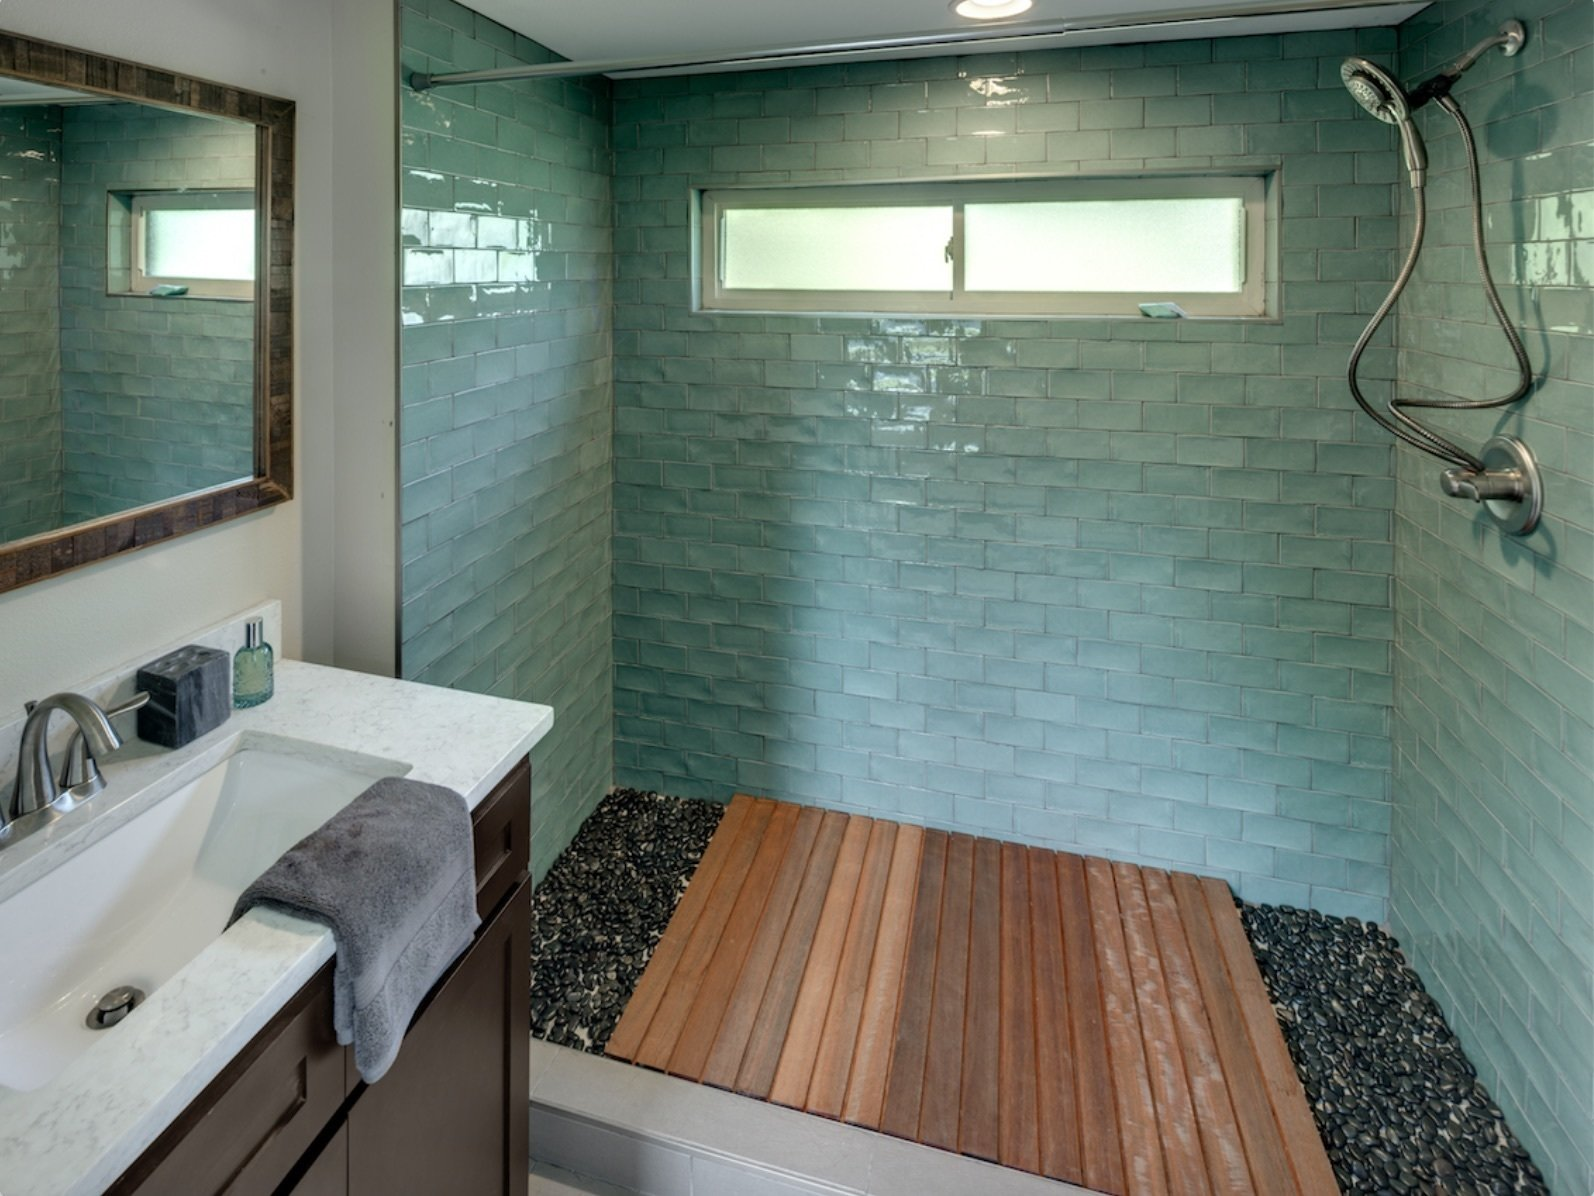 Bathroom with sea green tiles and Abaco flooring  Amplified Tiny House by Asha Mevlana